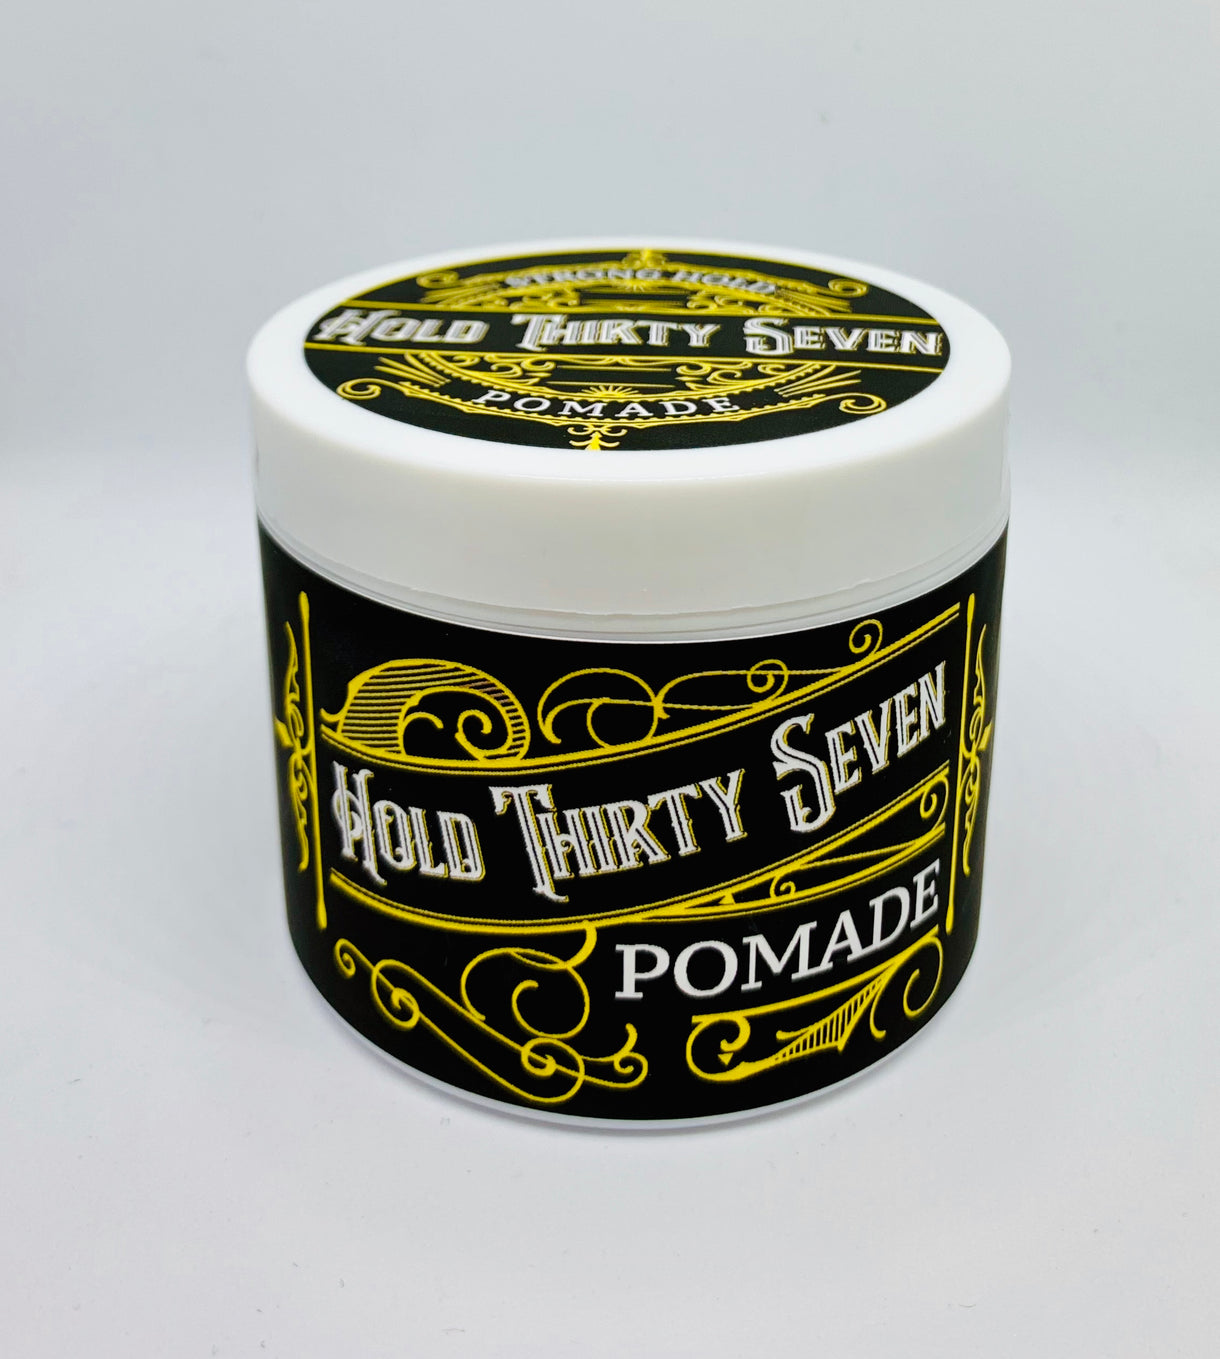 Hold 37 - Pomade - Water Based - Strong Hold - 4 Ounces